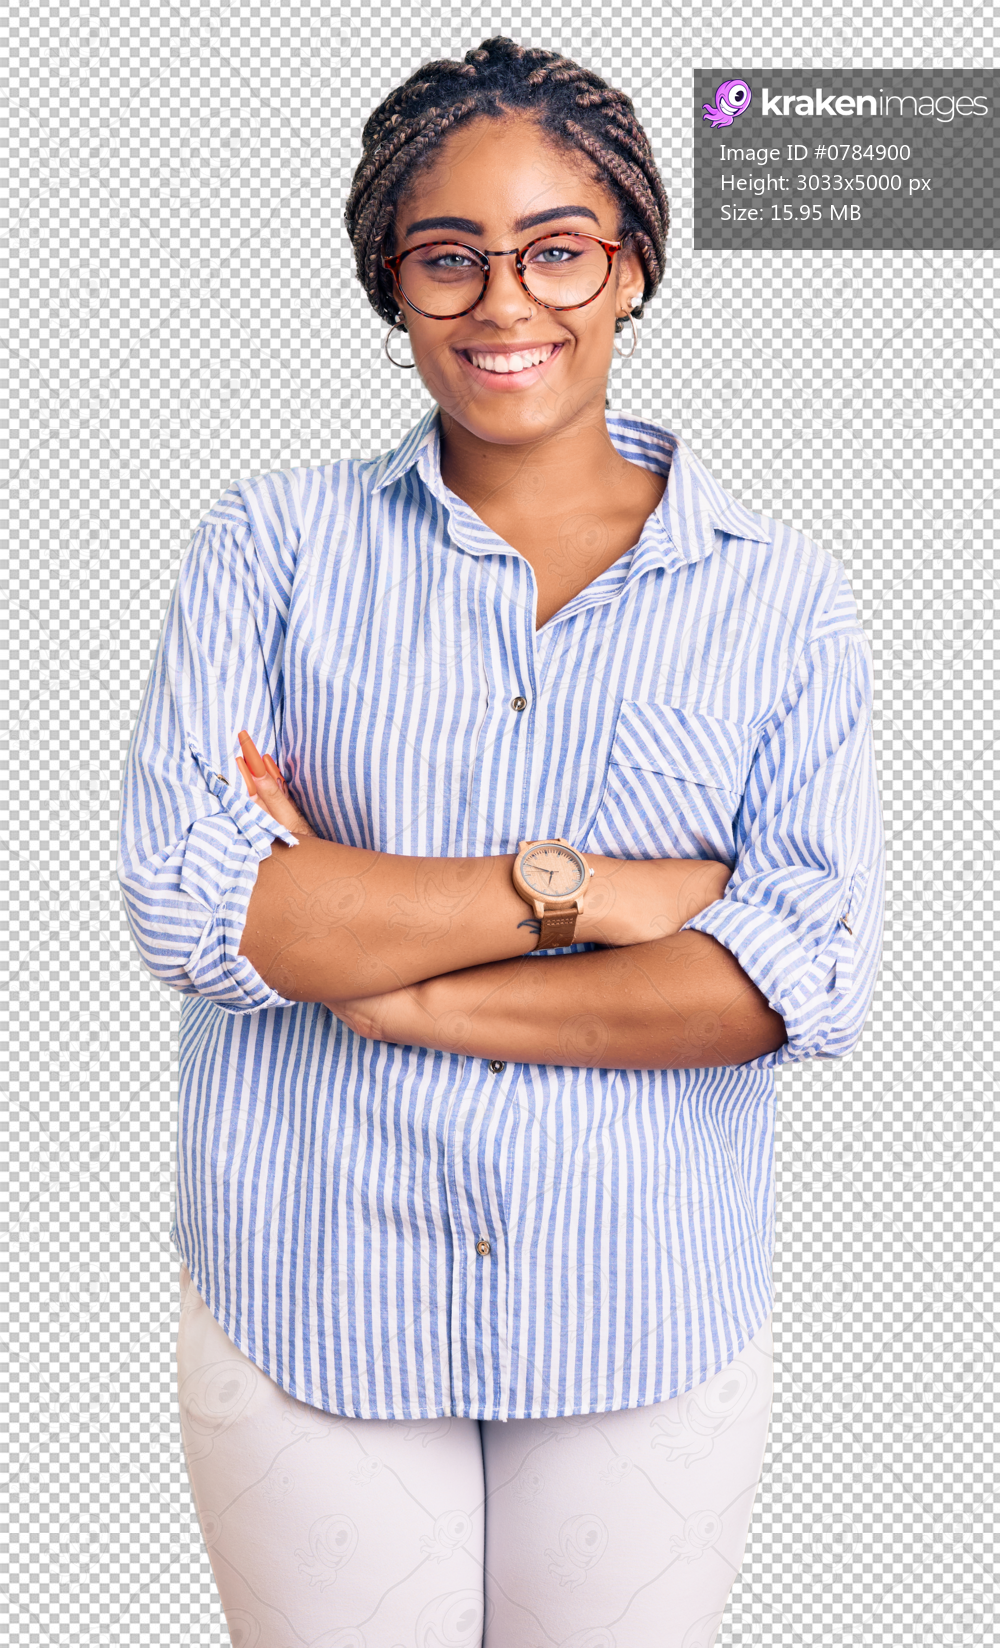 Young african american woman with braids wearing casual clothes and glasses happy face smiling with crossed arms looking at the camera. positive person.